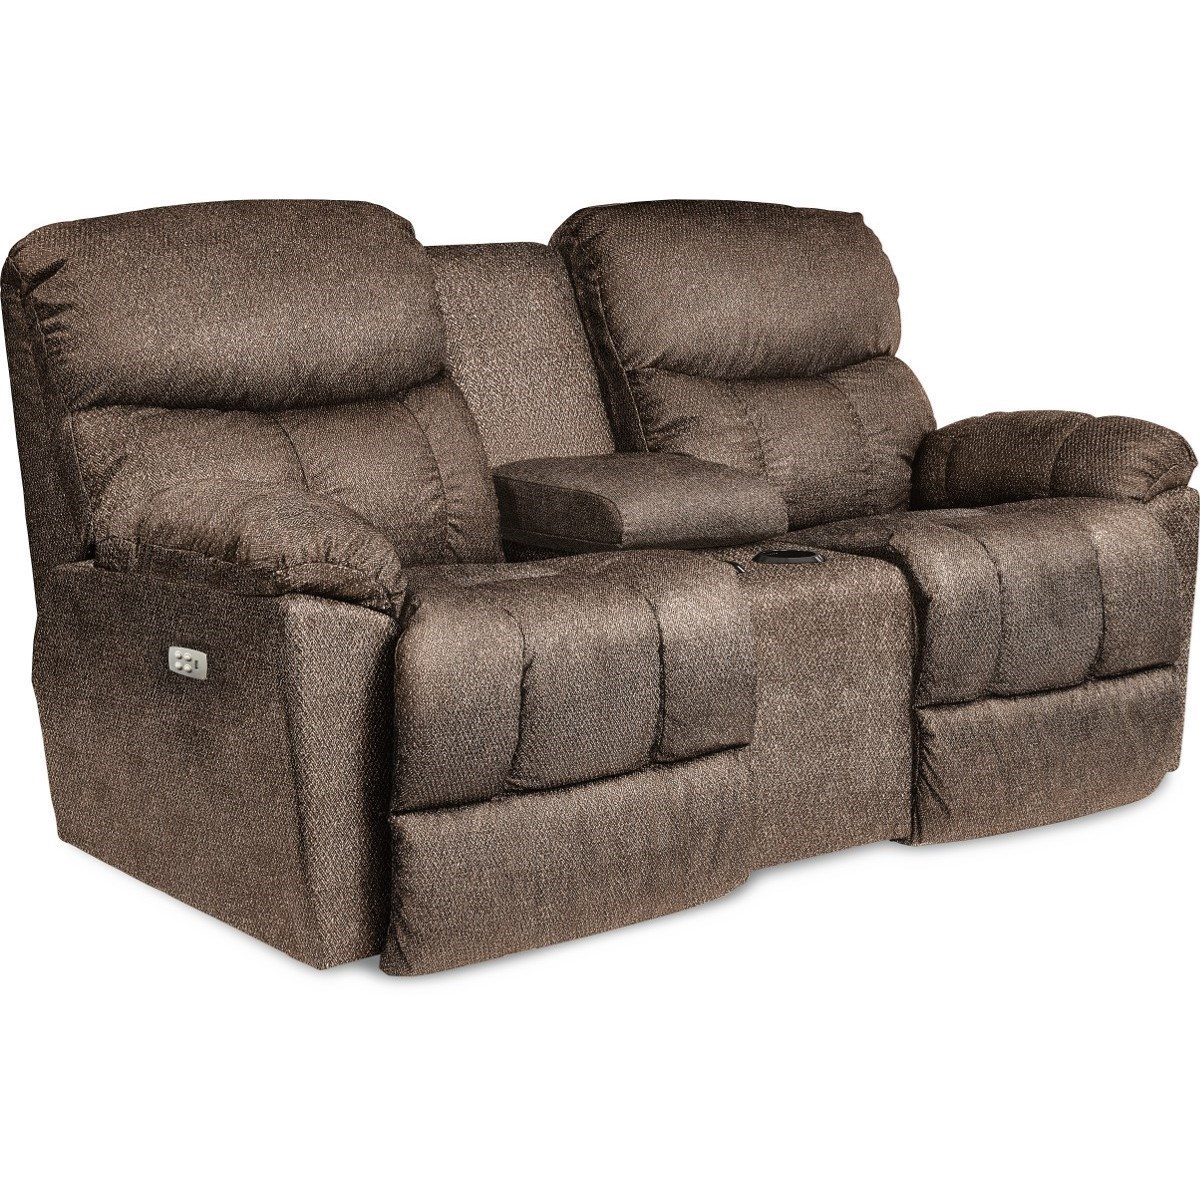 Picture of: La Z Boy Morrison Casual Reclining Loveseat With Cupholder Storage Console Conlin S Furniture Reclining Loveseats